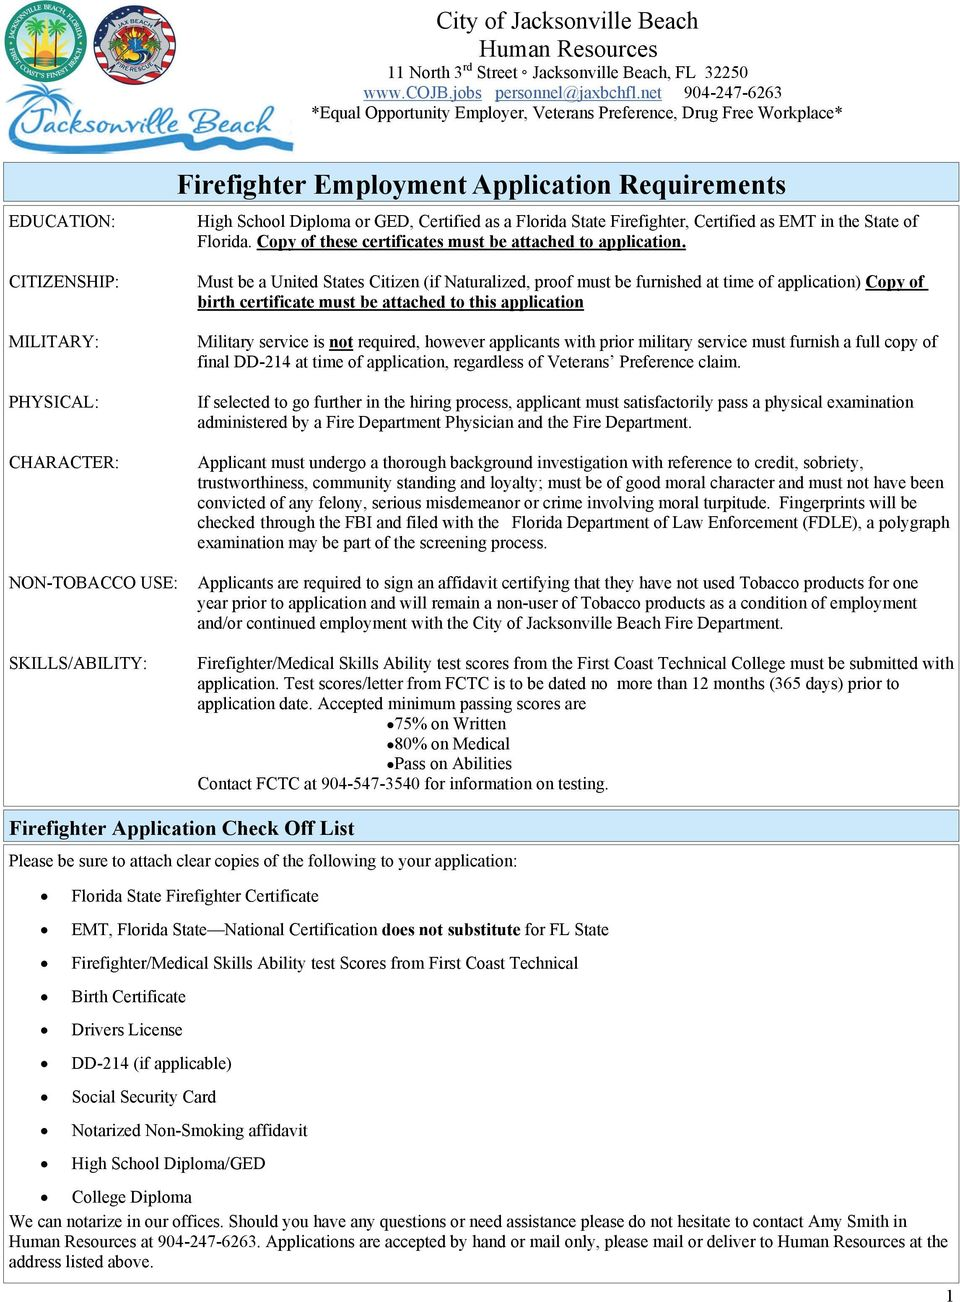 firefighter employment application requirements pdf